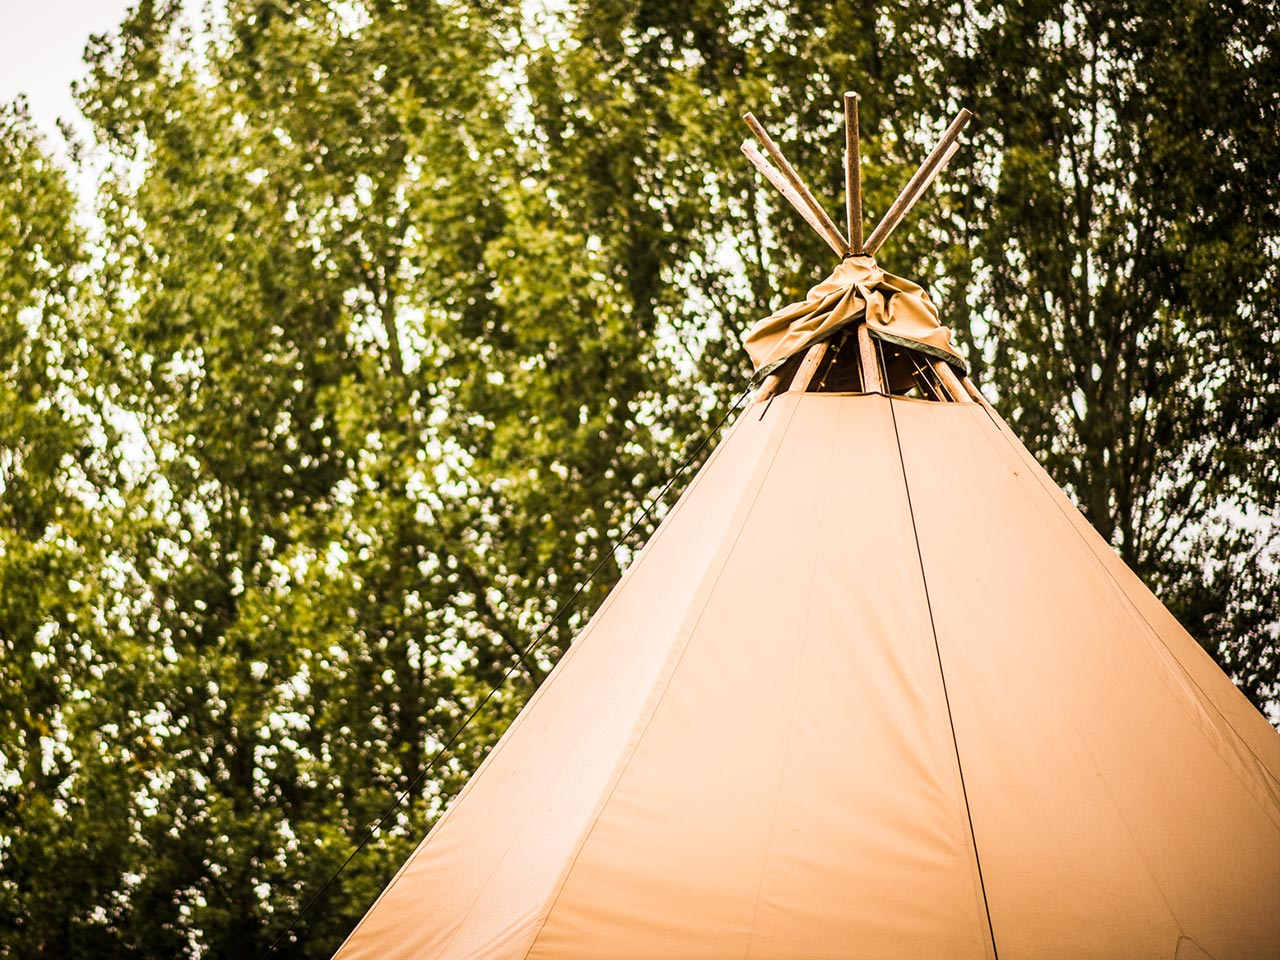 About us - One of our Tipis